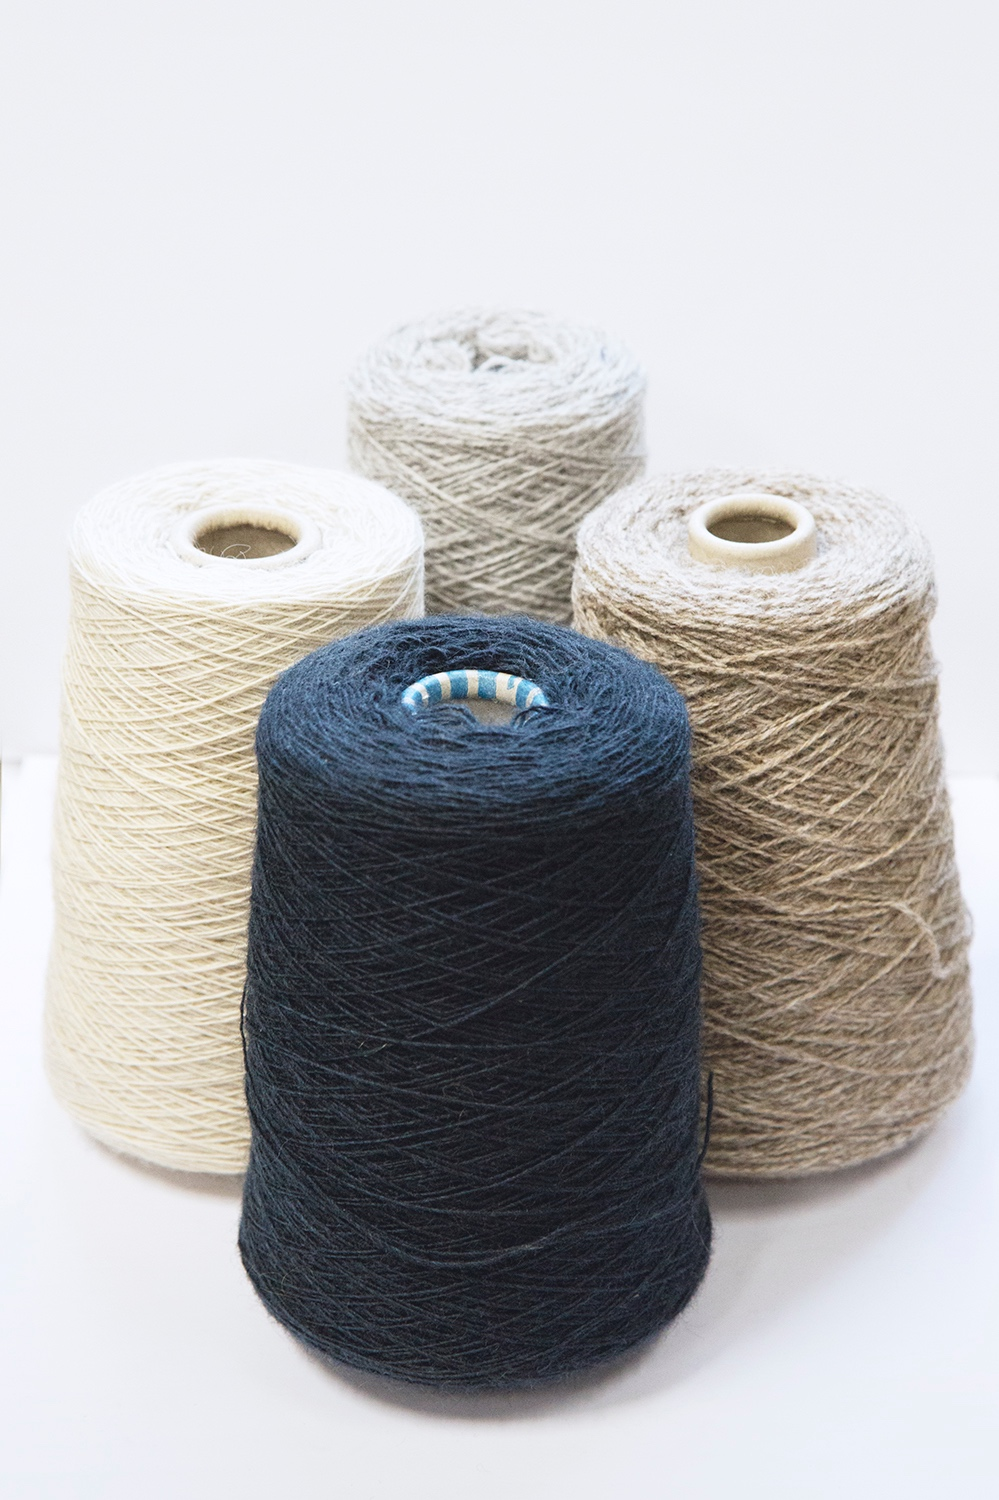 LOCALLY SOURCED WOOLWe source our Wool from Fernhill Farm an 'holistic eco-farm on top of the Mendip Hills' - which is a short drive from our studio. The Wool colouring is native to the sheep and its superior fine fibres have full traceability to the farm & surrounding SW areas. -